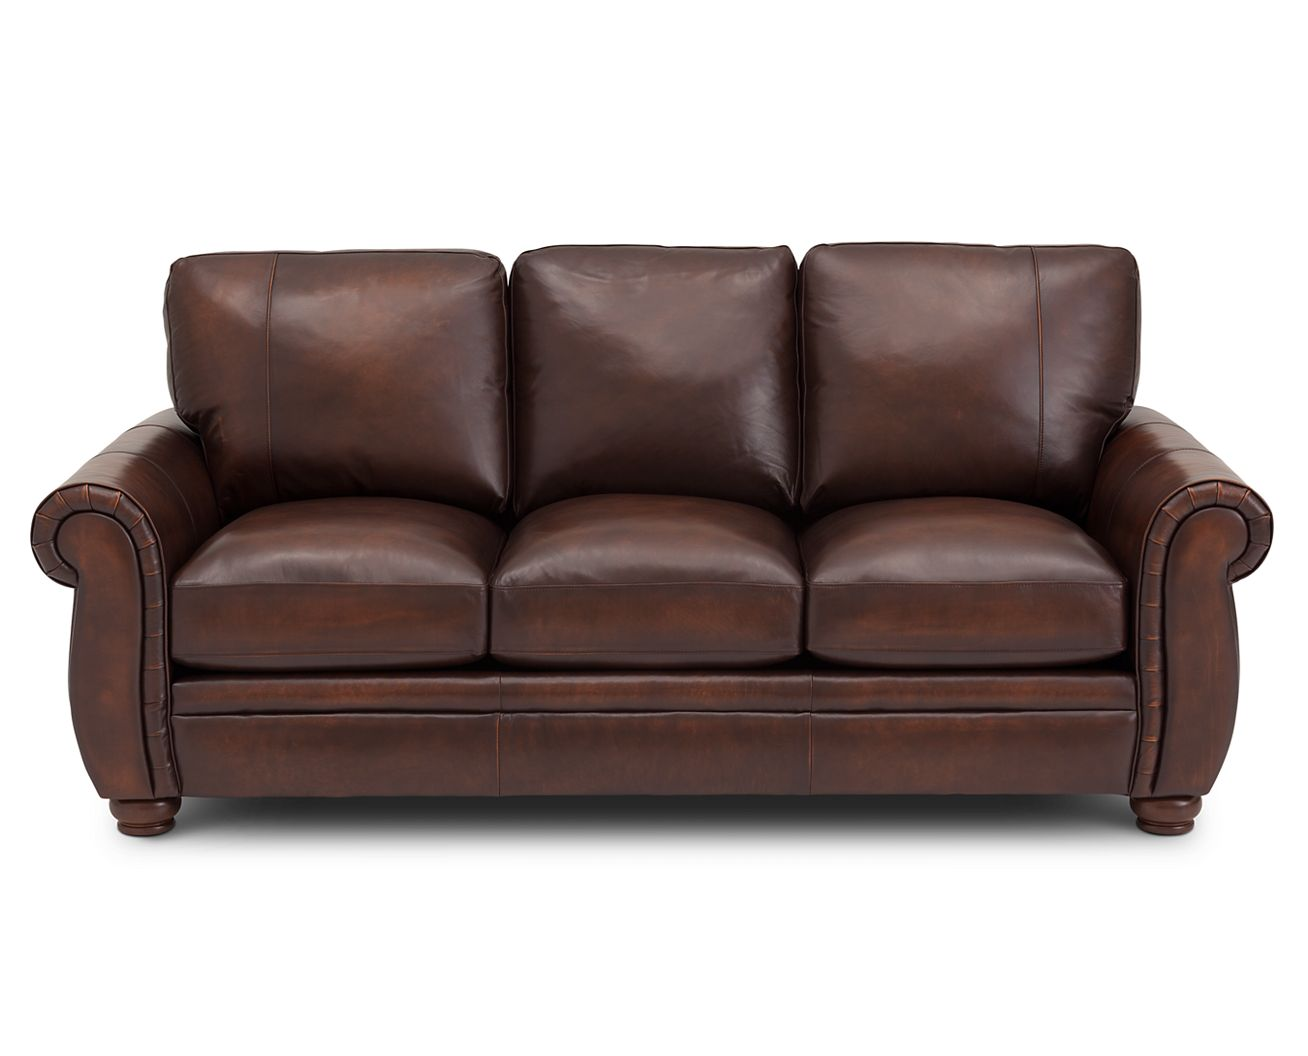 Leather Living Room Set Clearance Brown Leather Sectional Sofa Clearance Crowdsmachinecom